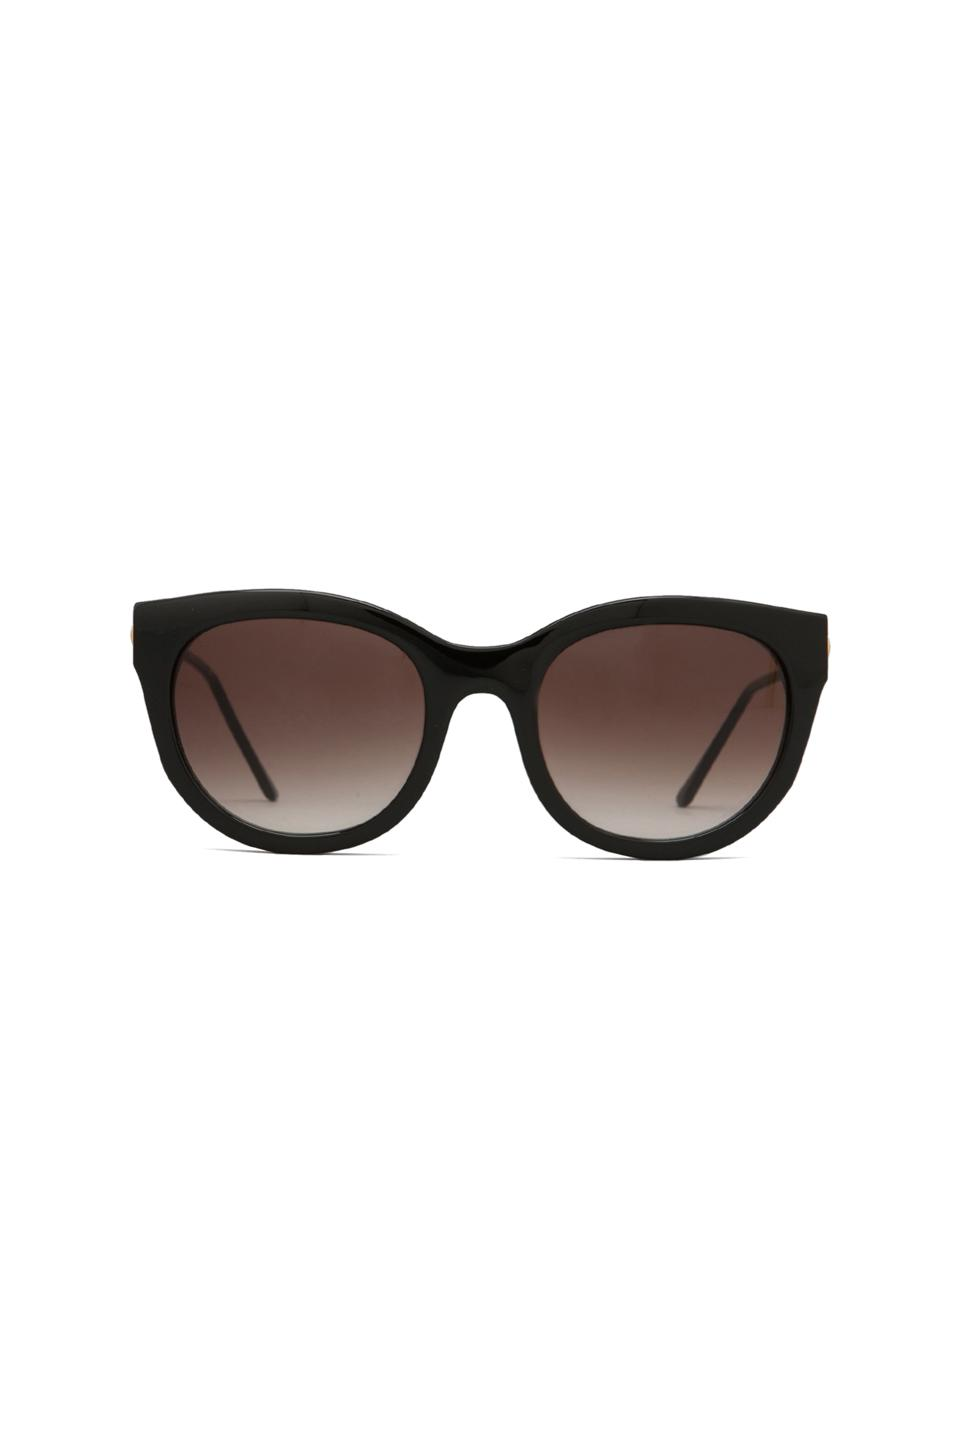 Thierry Lasry Lively Sunglasses in Black | REVOLVE